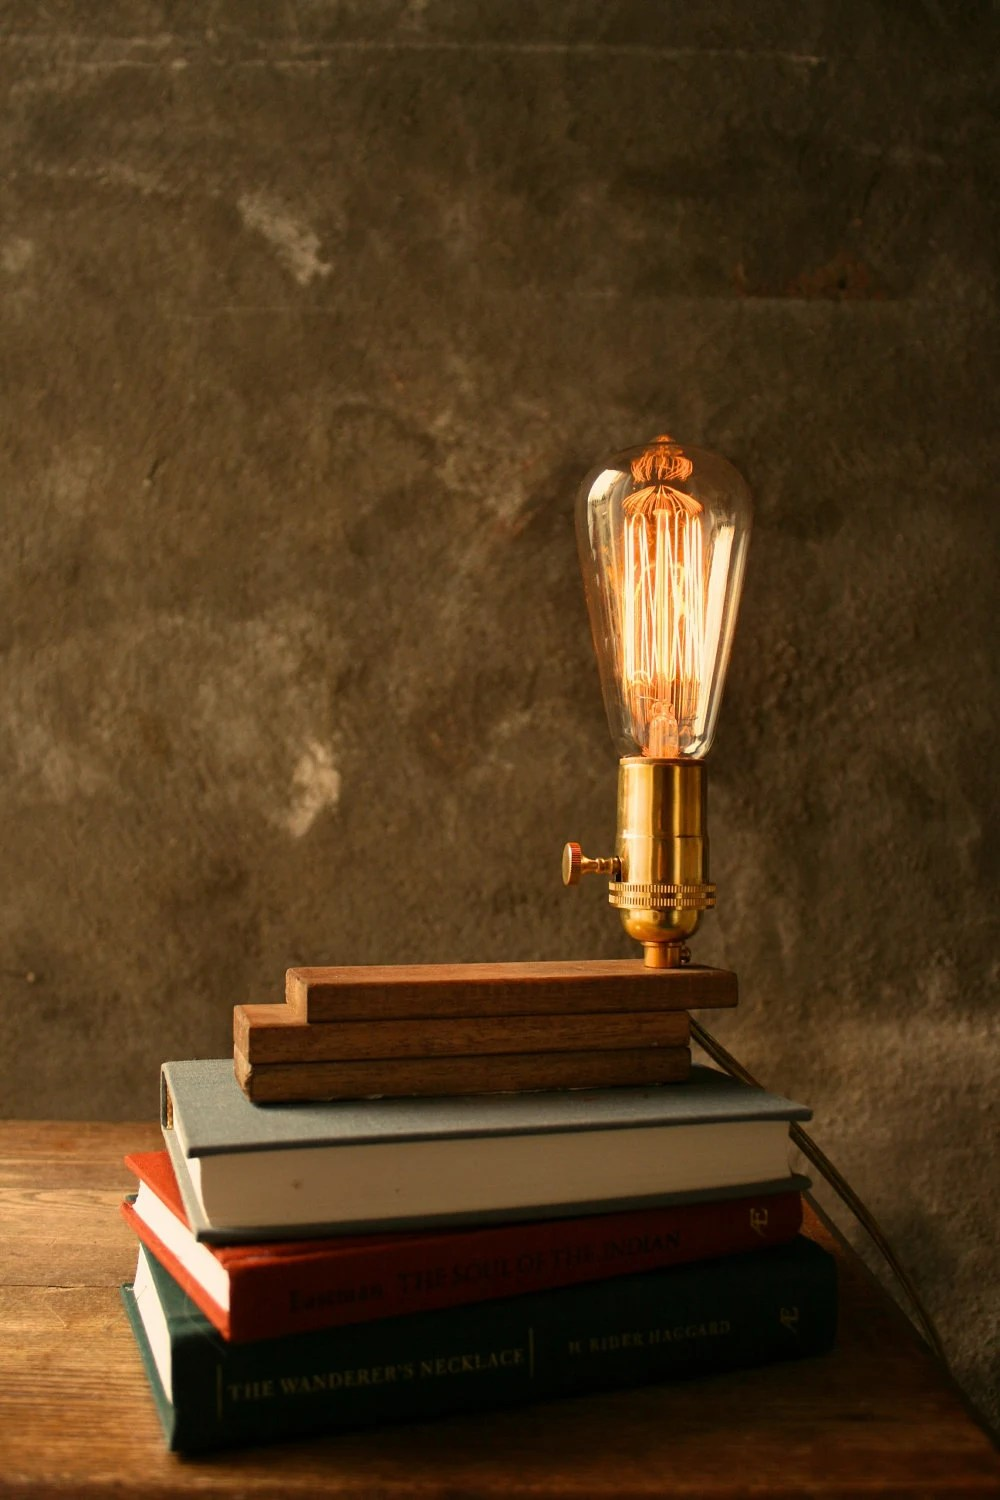 Boog Lamp Wood Lamp Diy Book Lamp Industrial Light Shabby Chic Cool